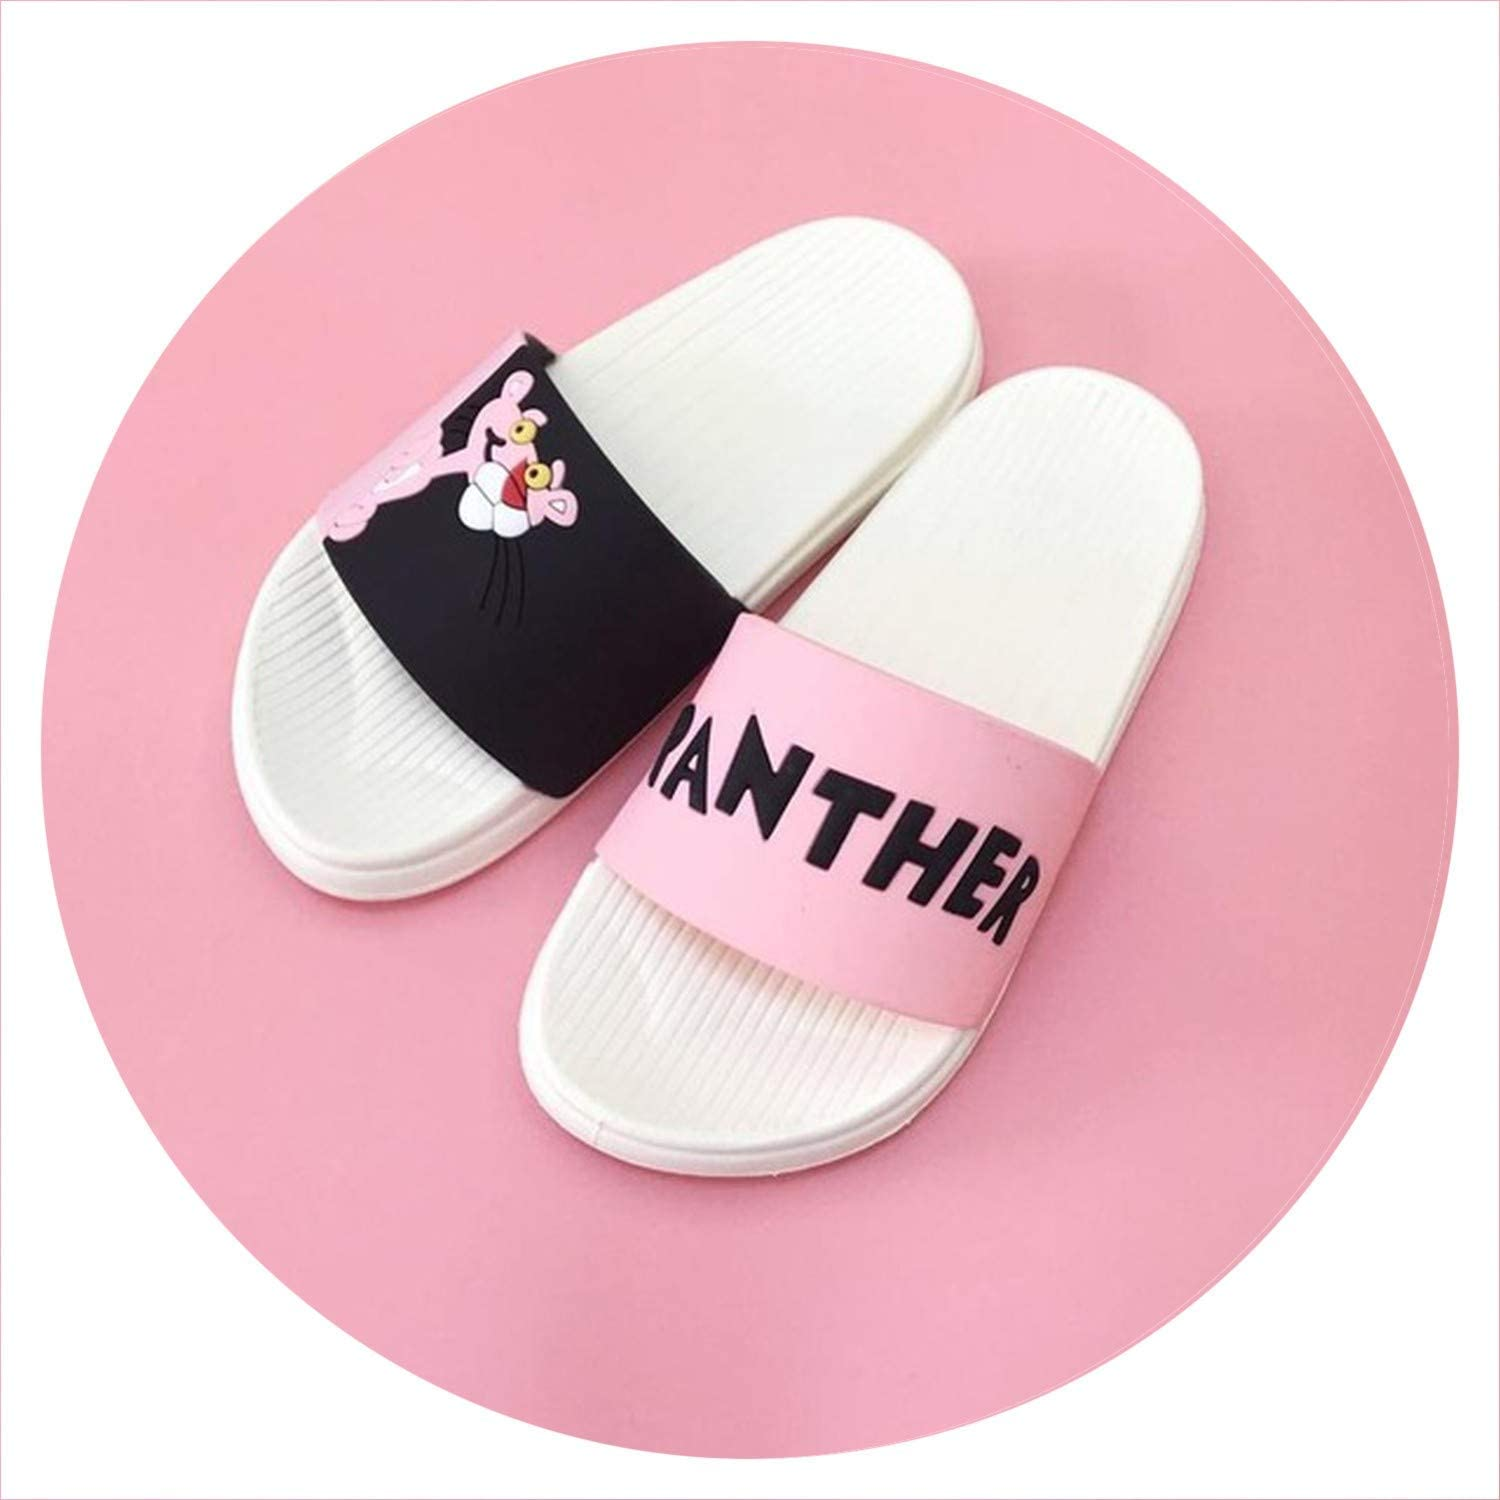 Glad You Came Summer Slippers Women shoes Badslippers Indoor Slippers Flip Flops Bathroom Winter Home Slippers shoes Woman Zapatillas de women,6277-3,5.5